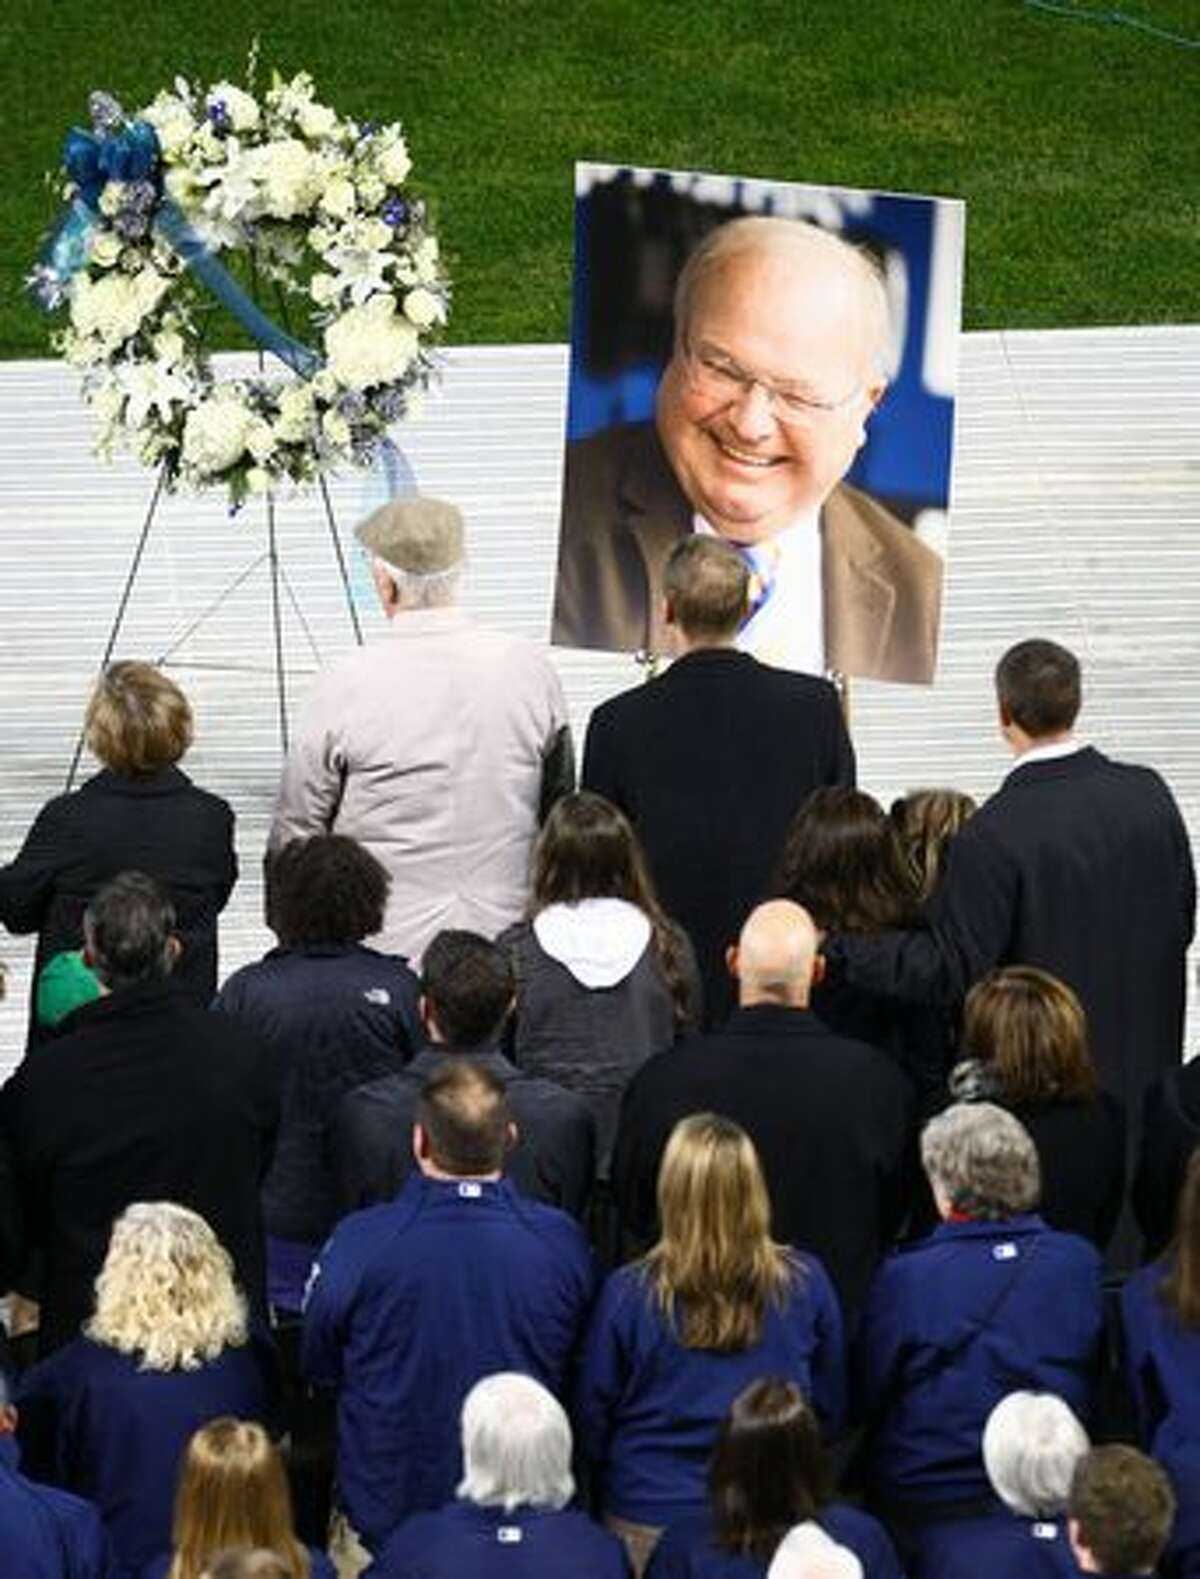 People stand during the national anthem at a celebration of life ceremony for Seattle Mariners broadcaster Dave Niehaus.